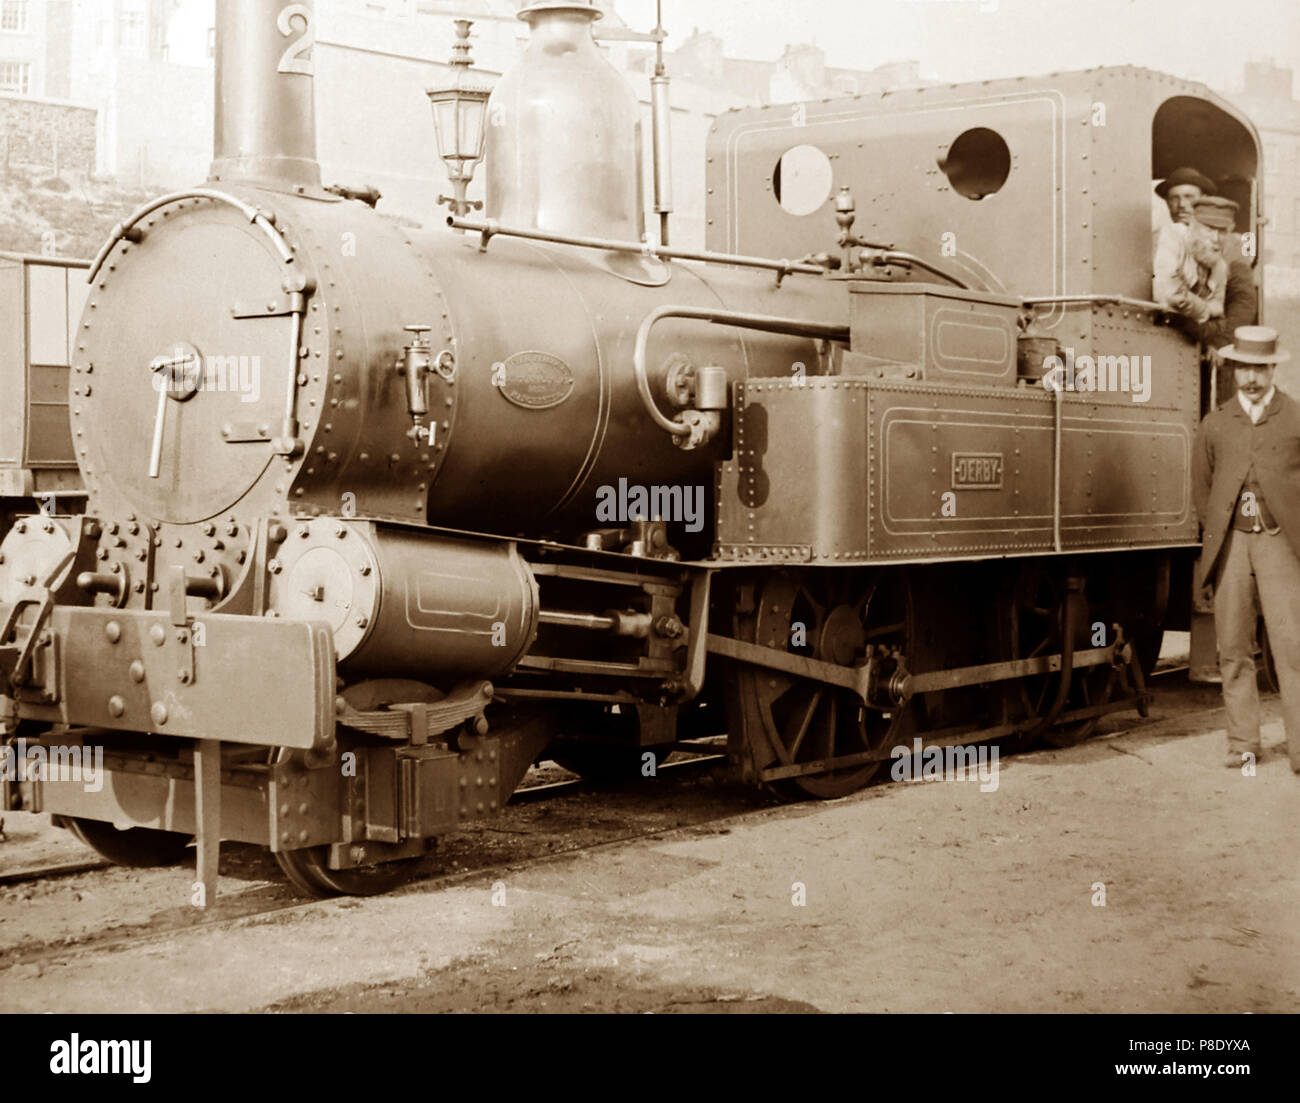 Beyer Peacock 'Derby' locomotive built in Manchester, probably Victorian period - Stock Image